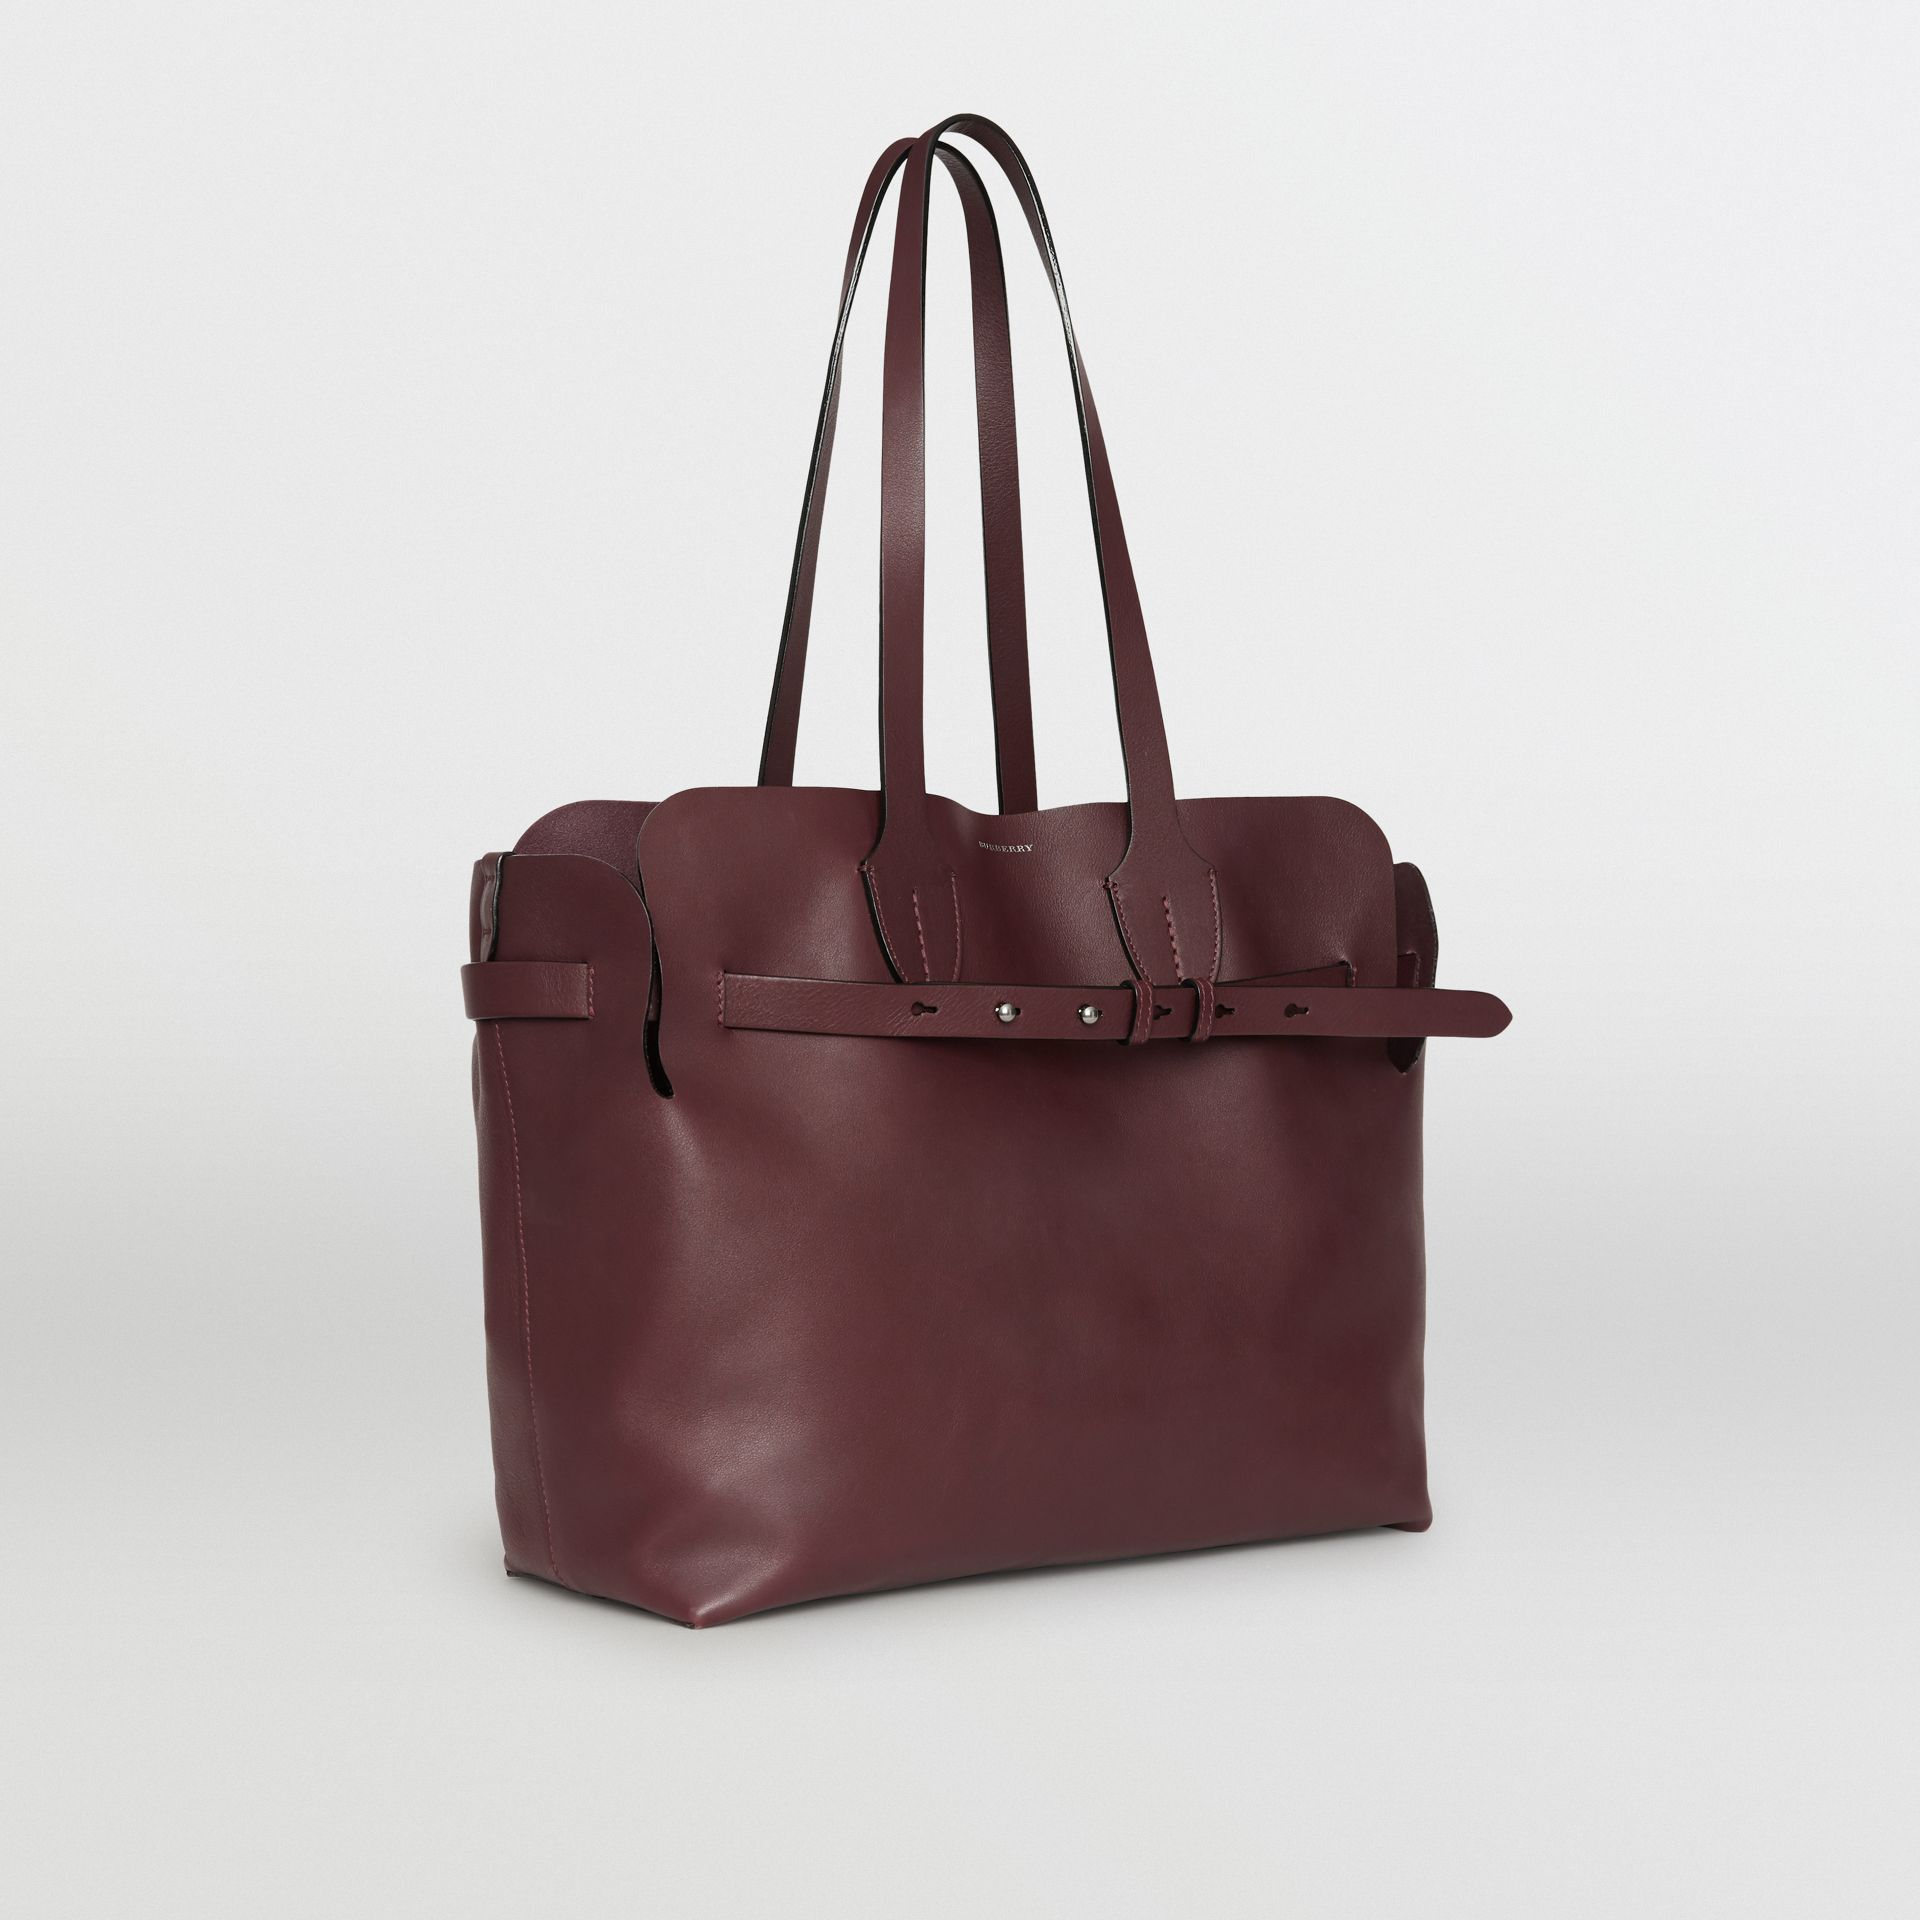 Sac The Belt moyen en cuir doux (Bordeaux Intense) - Femme | Burberry Canada - photo de la galerie 4